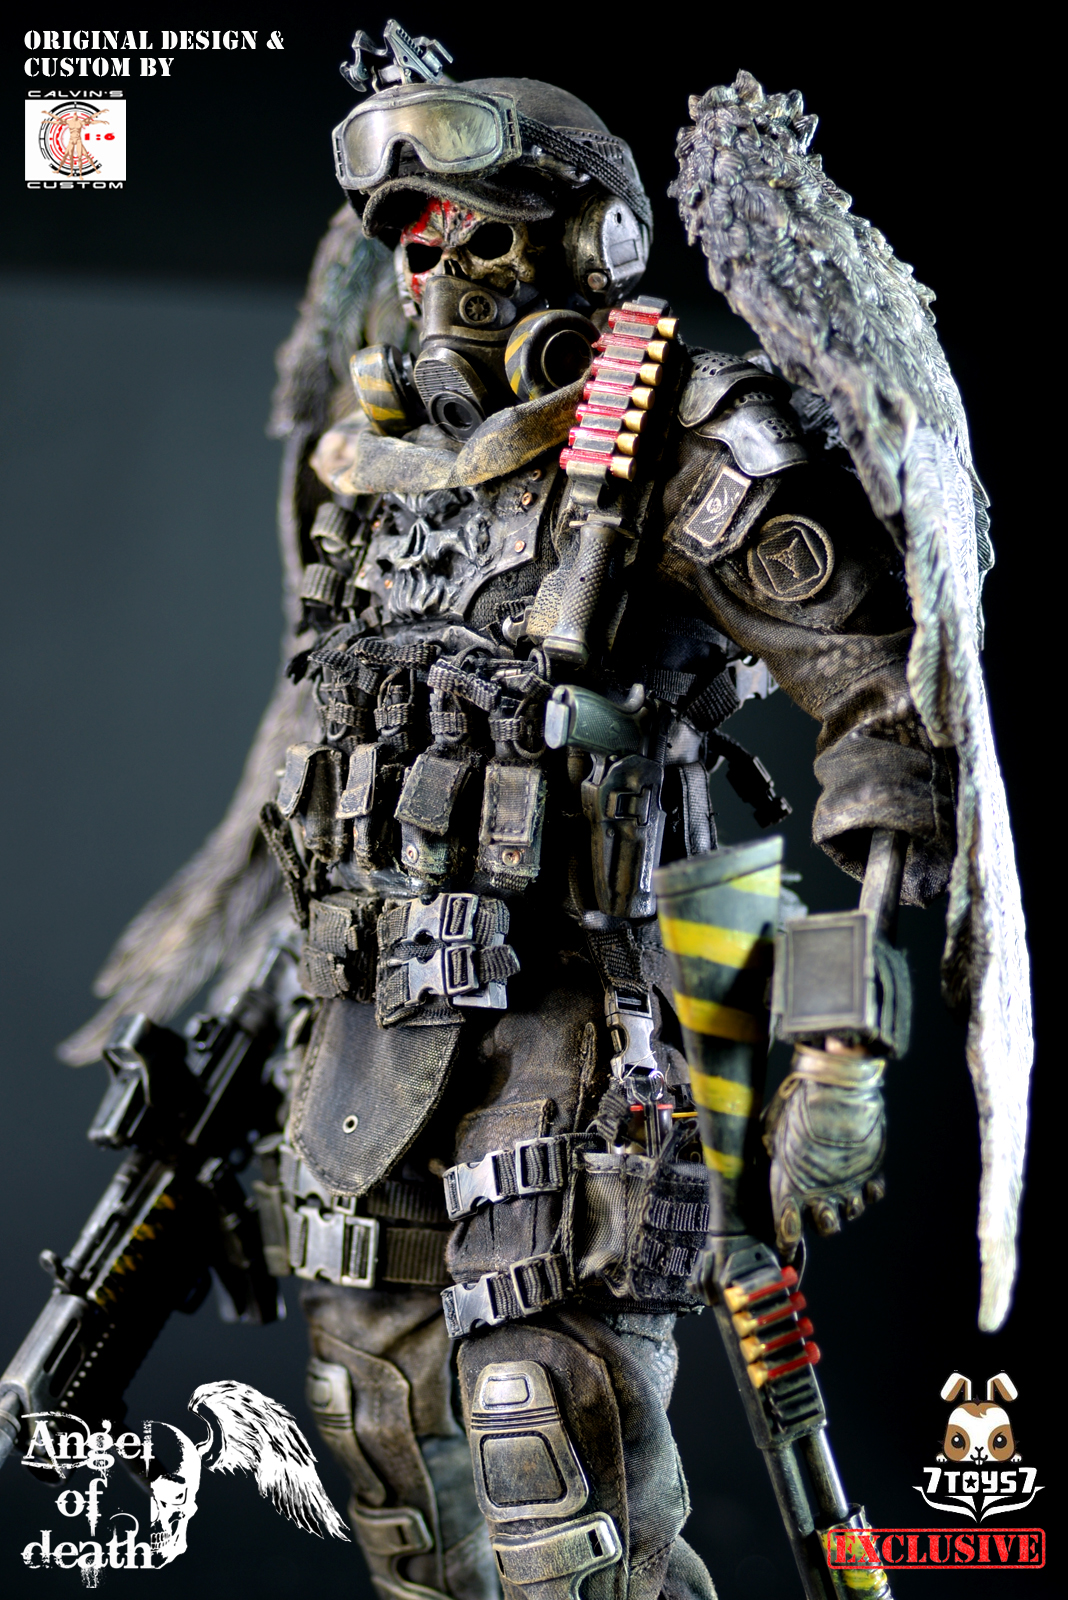 Call of duty black ops images calvins custom x 7toys7 ebay call of duty black ops images calvins custom x 7toys7 ebay exclusive 06 angel of death hd wallpaper and background photos voltagebd Image collections